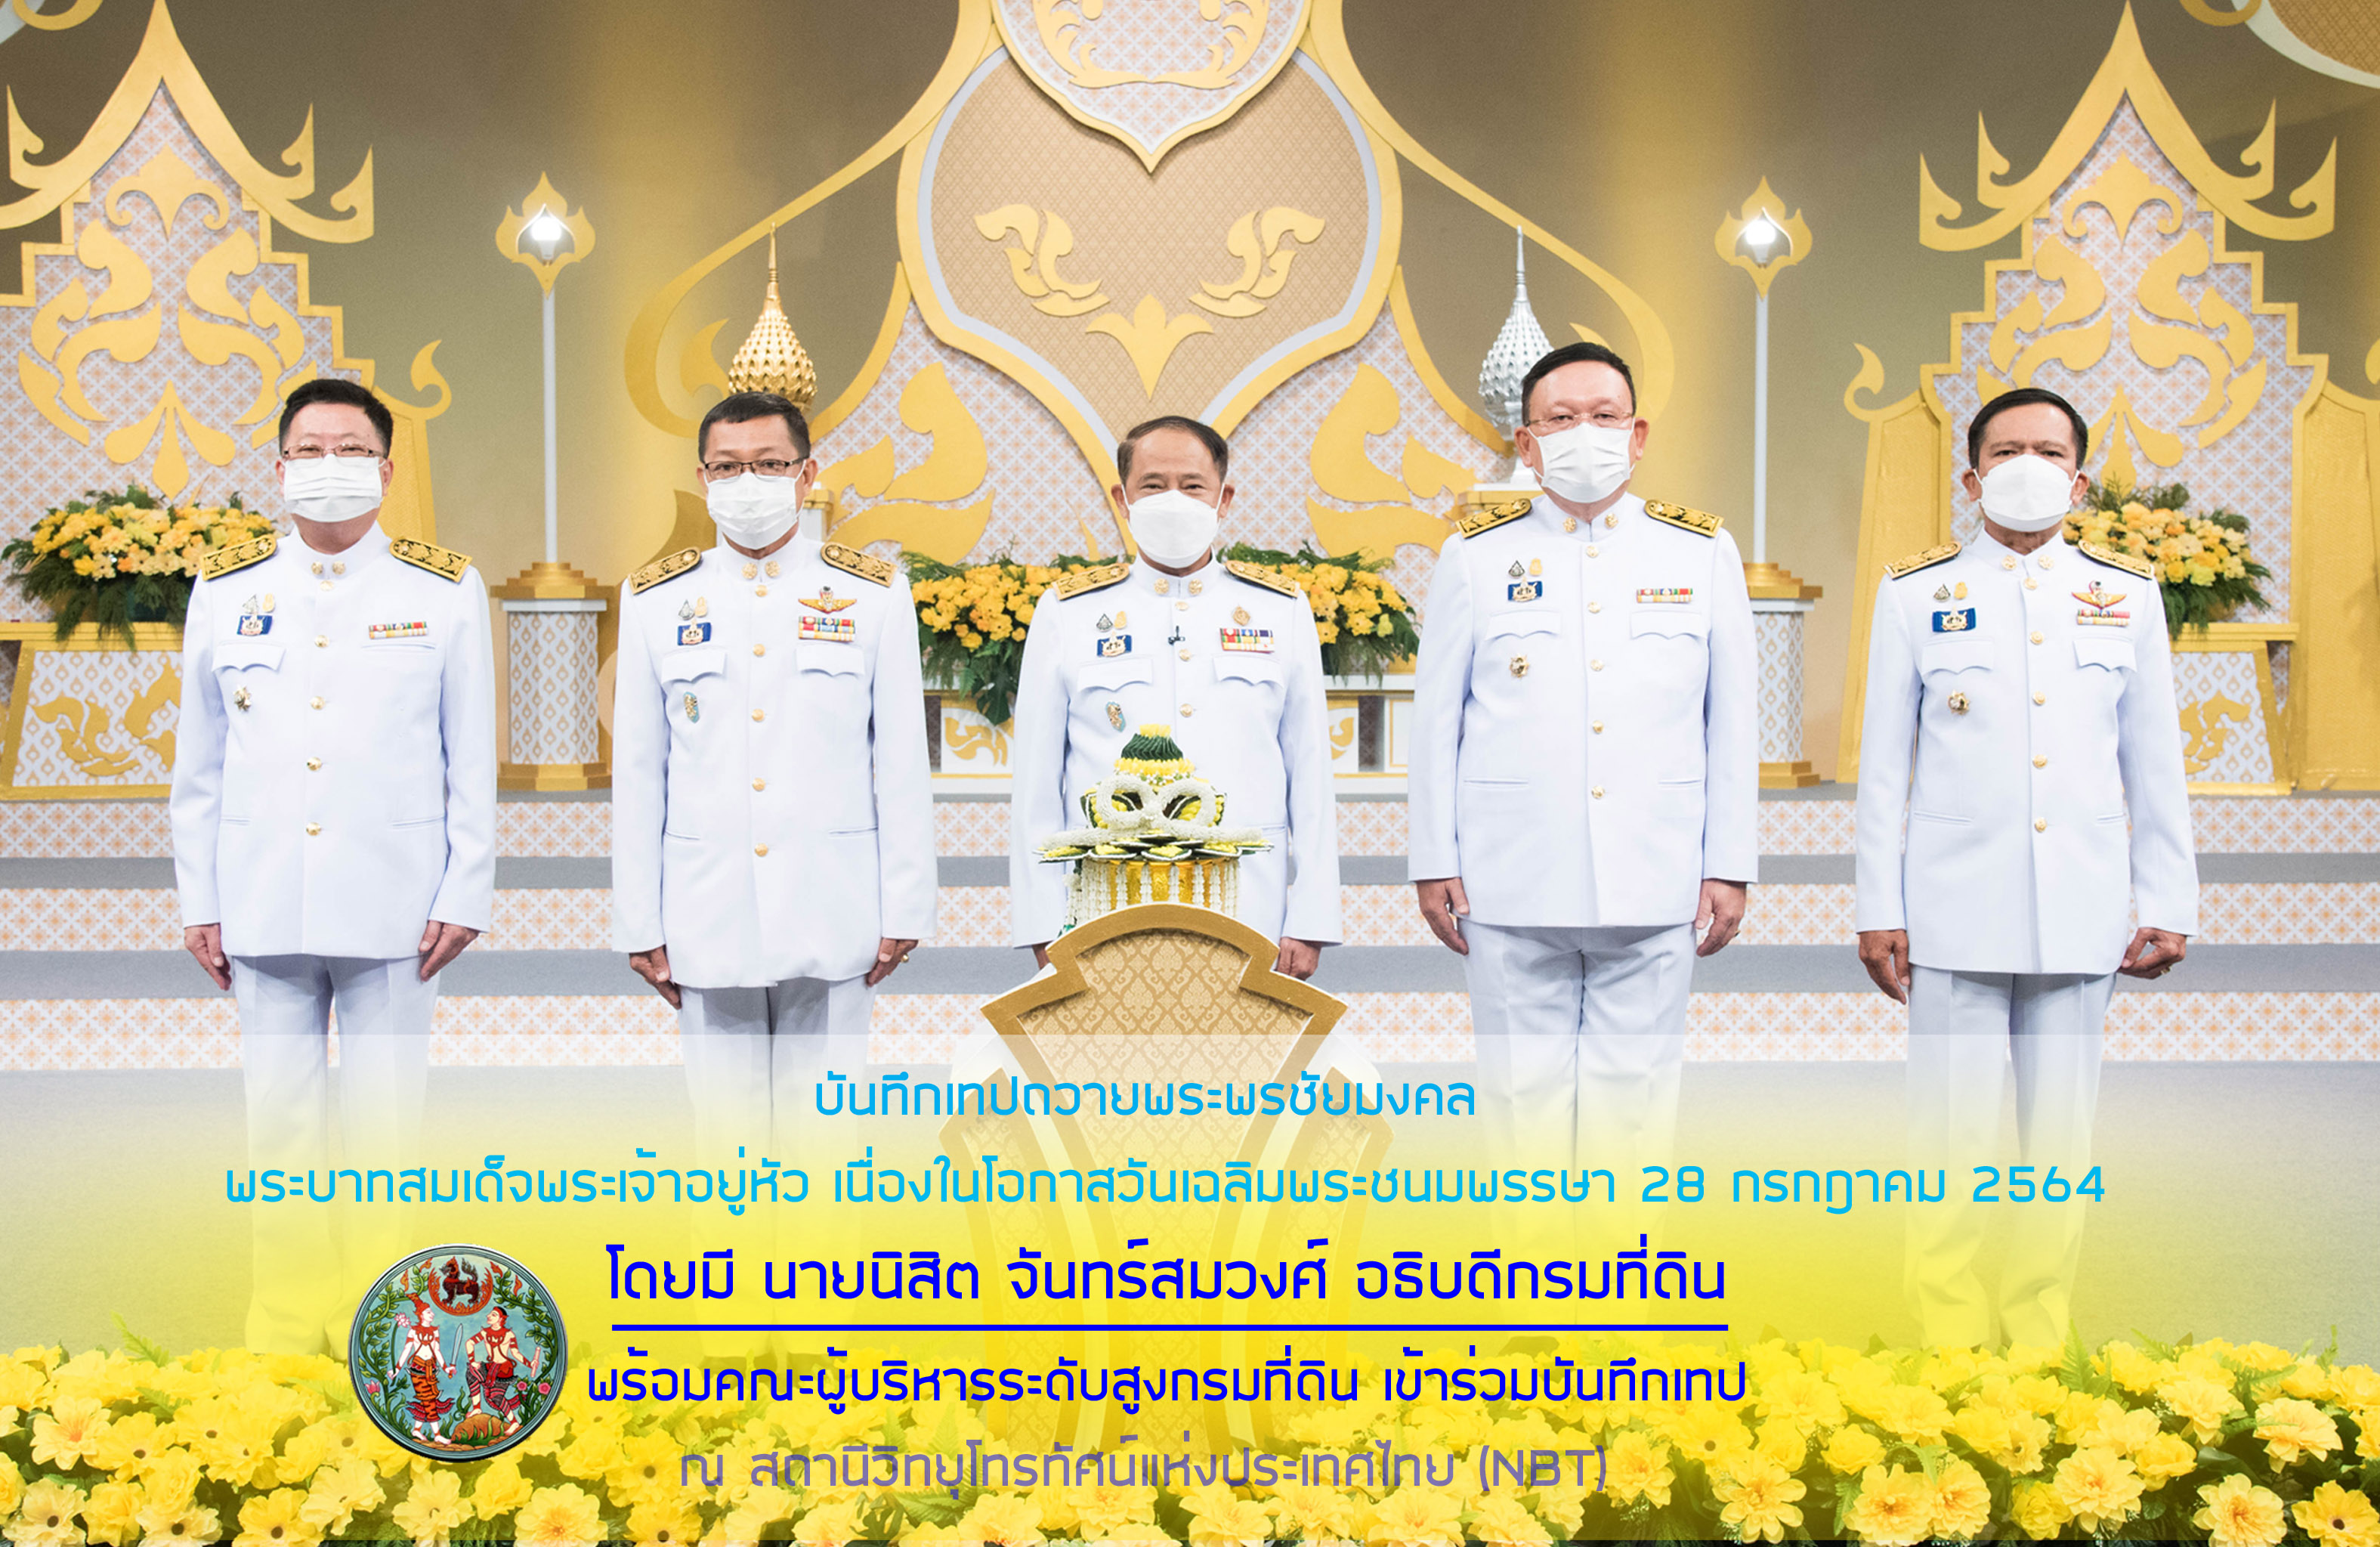 Blessings of His Majesty the King On the Occasion of His Majesty the King's Birthday